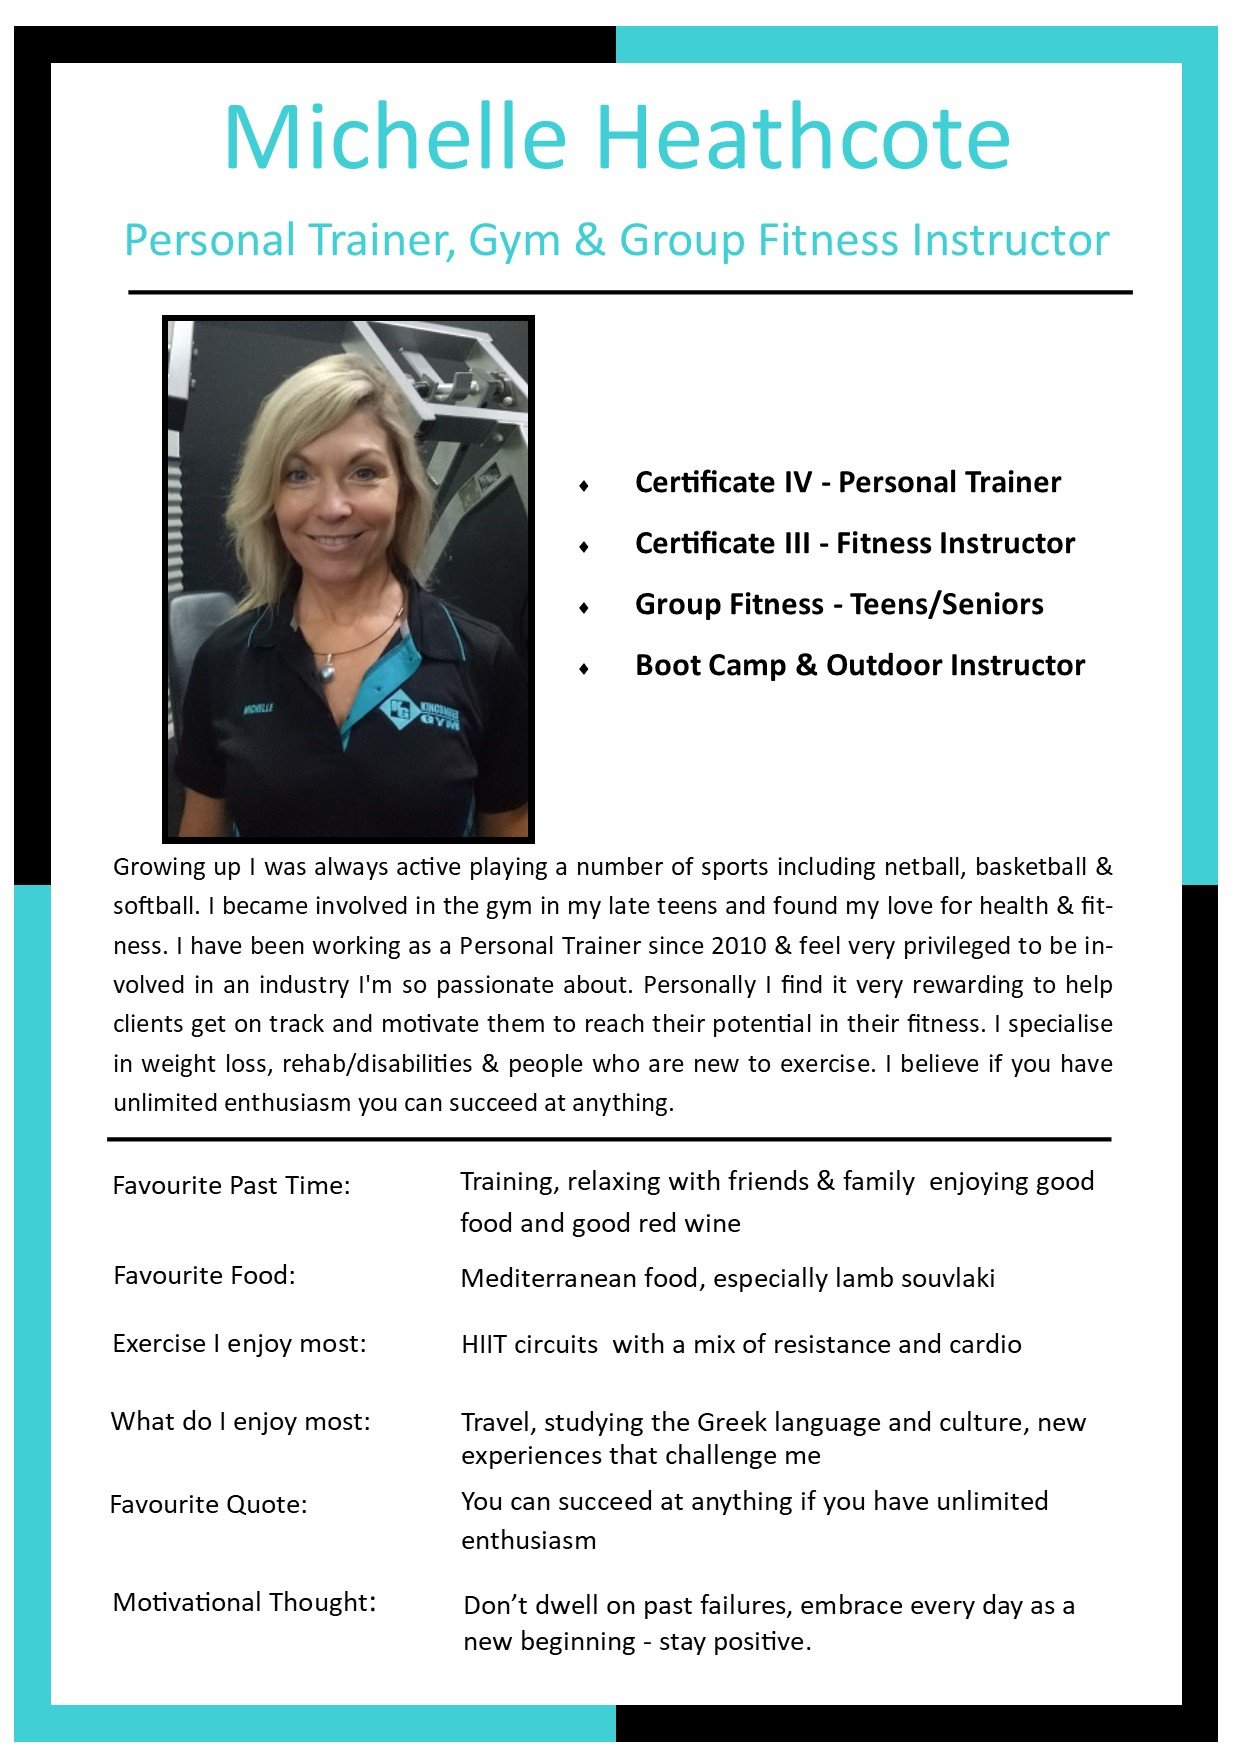 trainer profile gym trainers personal services pass guest